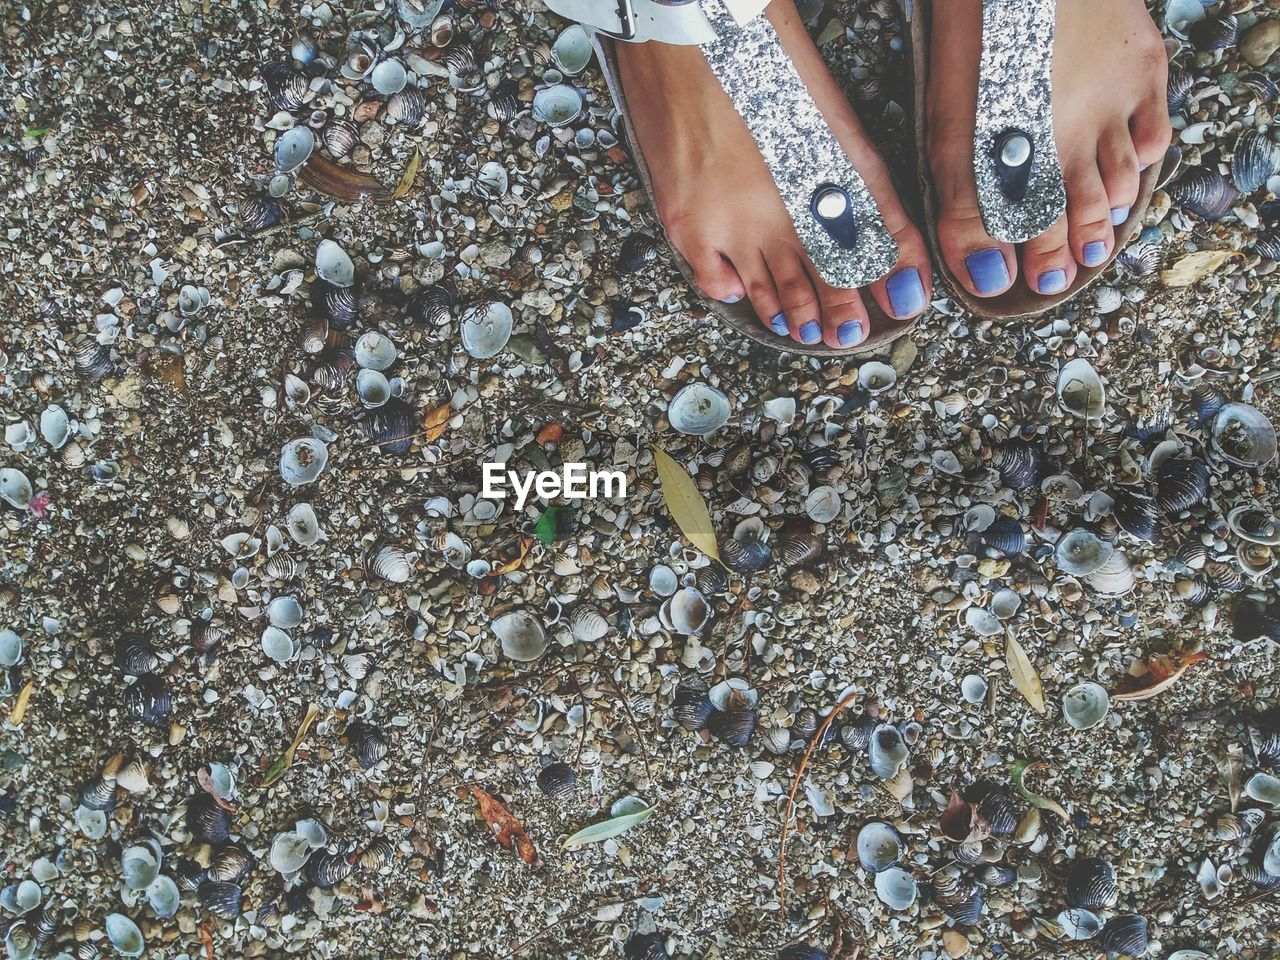 human body part, one person, body part, real people, low section, land, beach, stone - object, human hand, lifestyles, high angle view, day, nature, shell, solid, hand, human leg, leisure activity, pebble, outdoors, human foot, nail, human limb